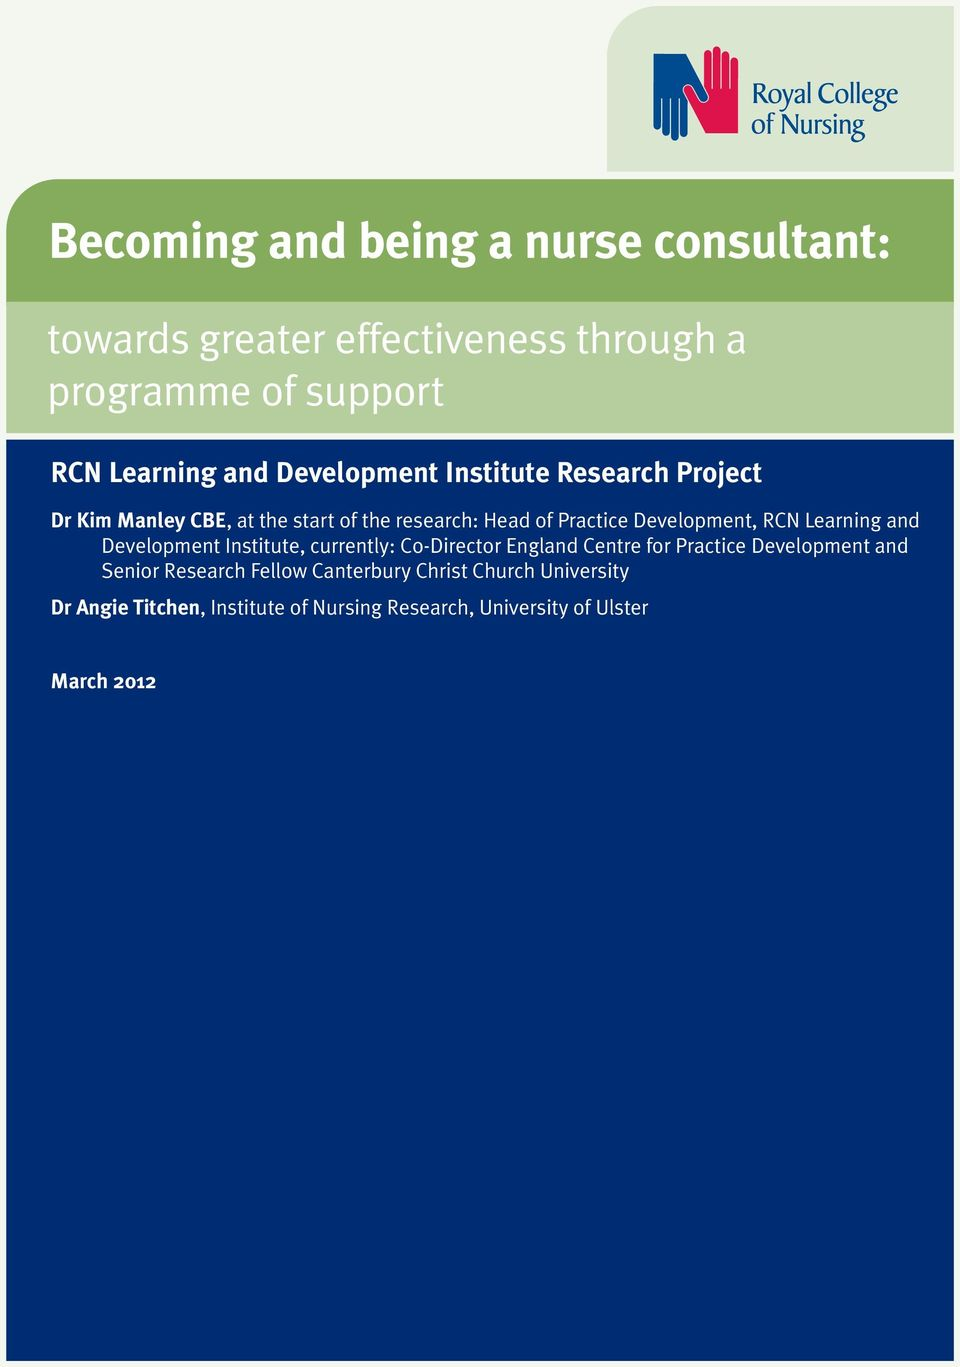 RCN Learning and Development Institute, currently: Co-Director England Centre for Practice Development and Senior